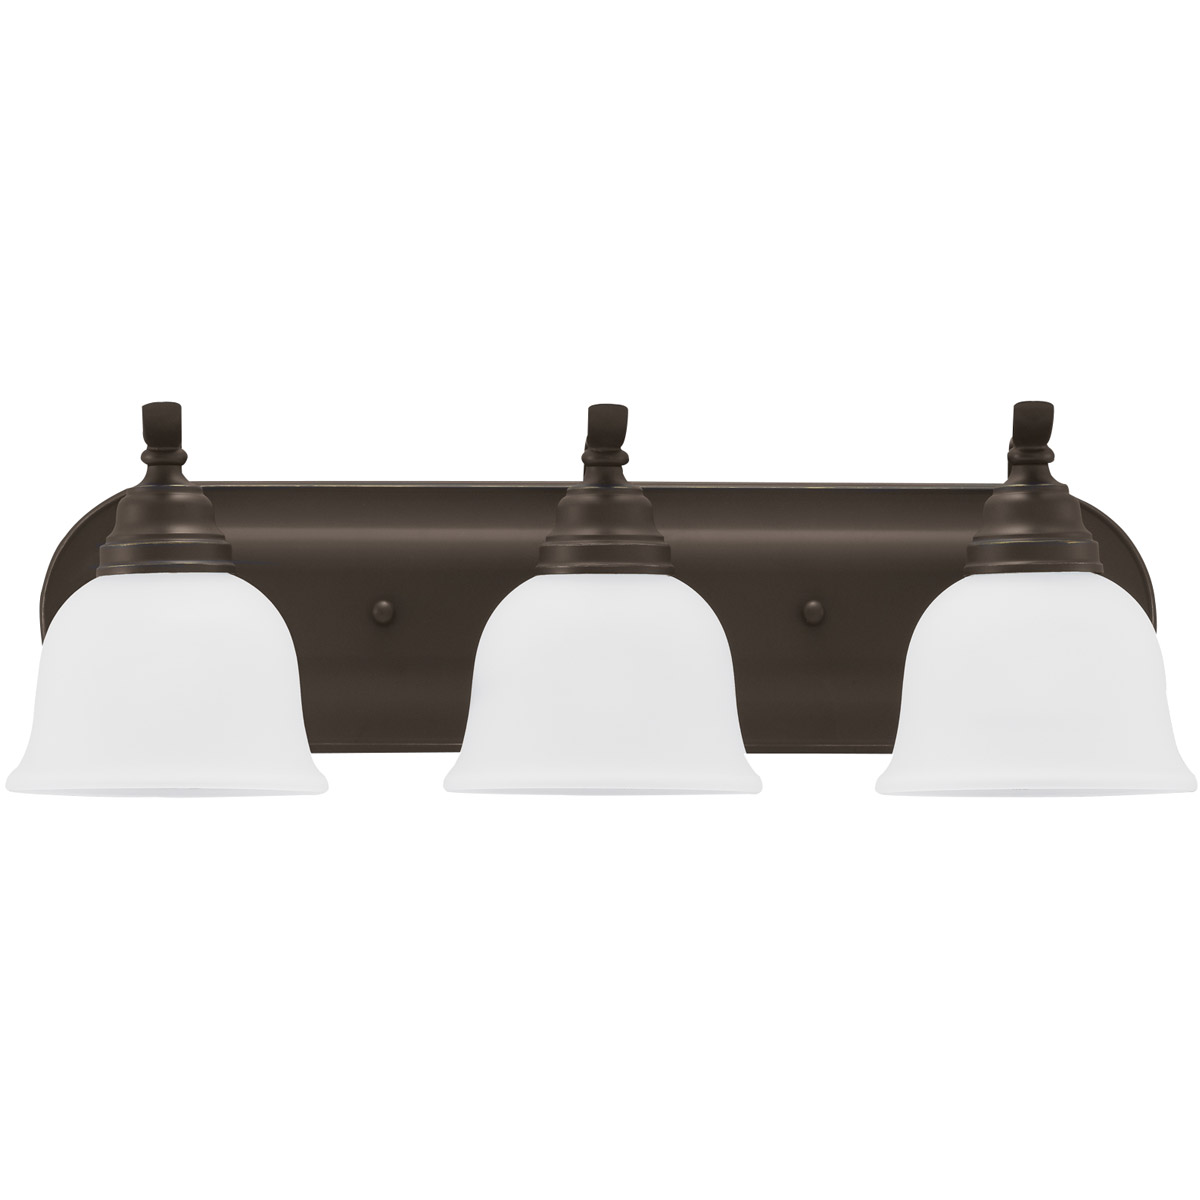 Sea Gull 44627-782 Wheaton 3 Light 24 inch Heirloom Bronze Bath Vanity Wall Light in Standard photo